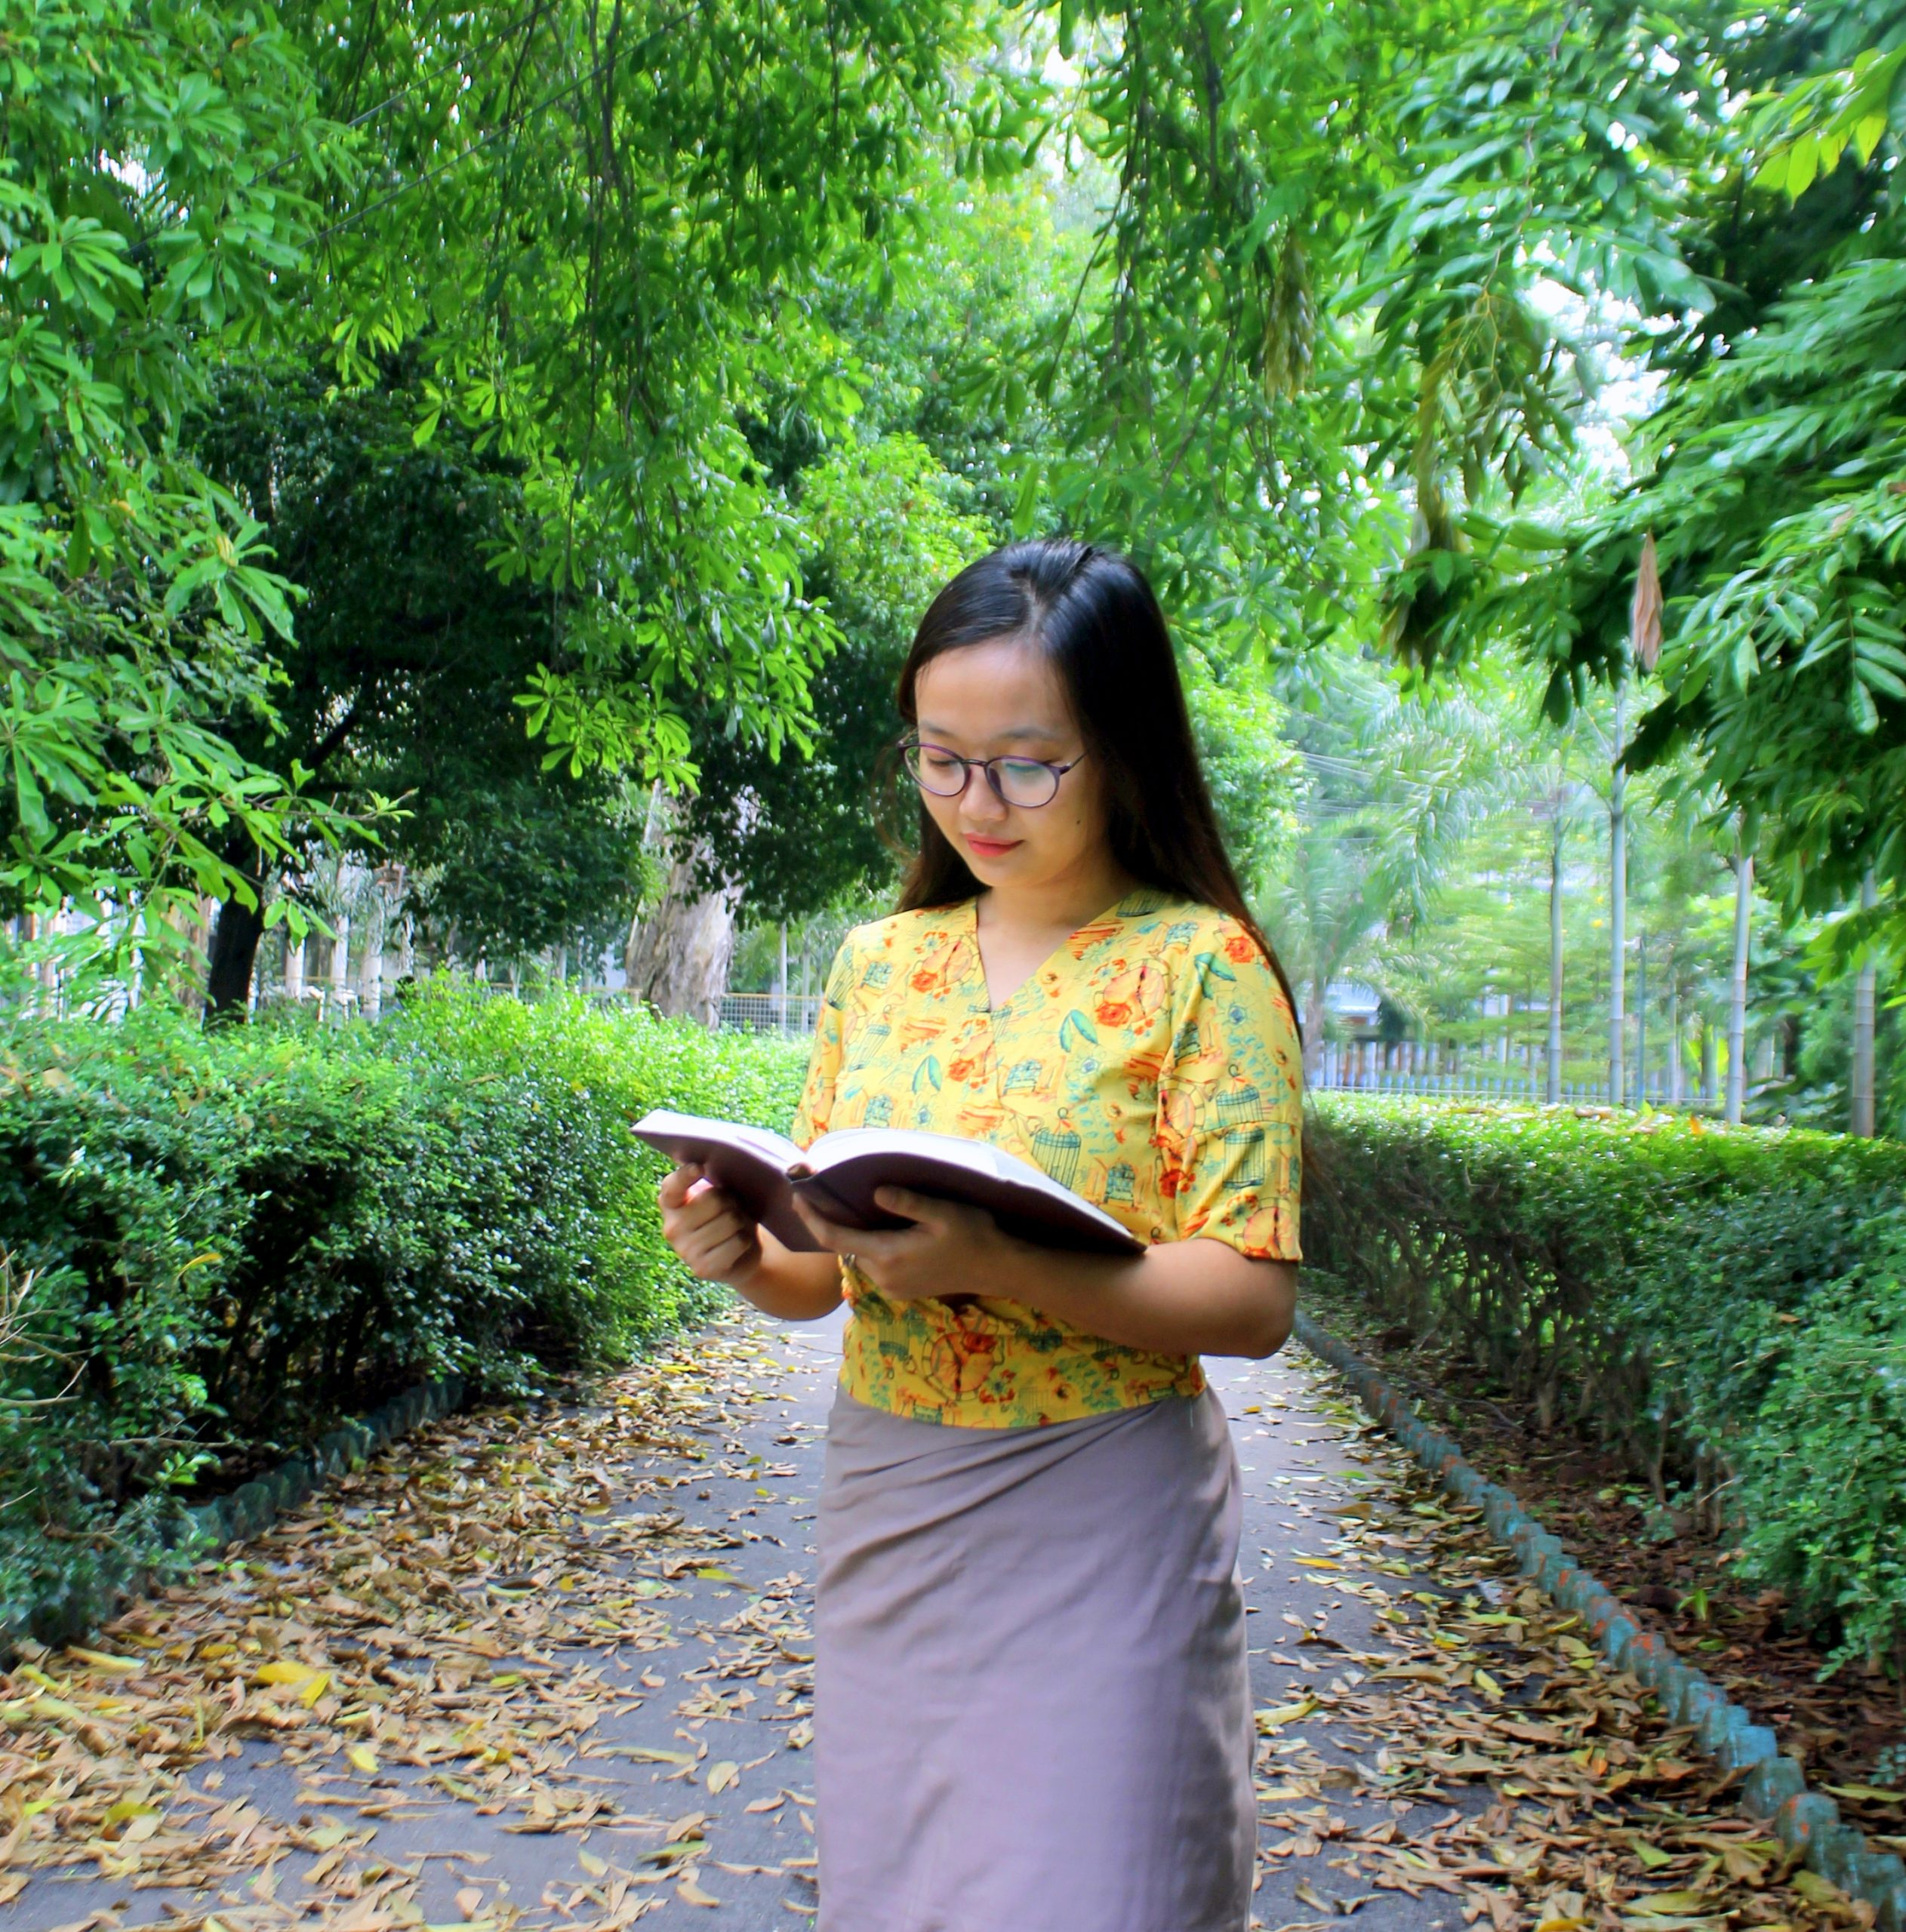 Girl Reading book in the garden